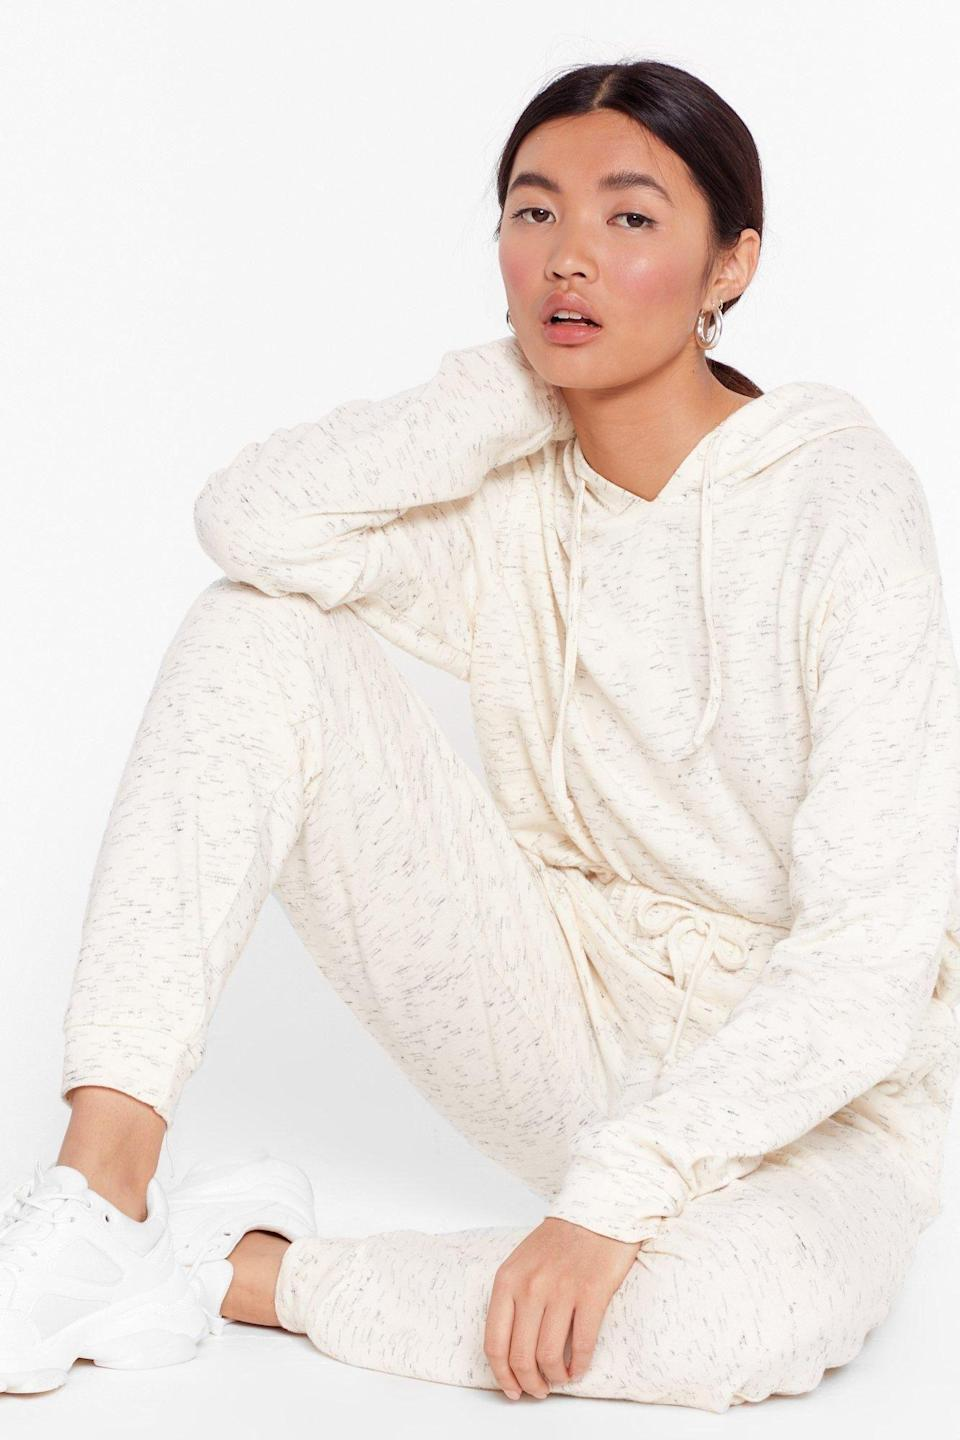 """<p><strong>NastyGal Basics</strong></p><p>nastygal.com</p><p><strong>$40.00</strong></p><p><a href=""""https://go.redirectingat.com?id=74968X1596630&url=https%3A%2F%2Fwww.nastygal.com%2Fca%2Frunning-late-hoodie-and-joggers-set%2FAGG56531.html&sref=https%3A%2F%2Fwww.goodhousekeeping.com%2Fclothing%2Fg35044369%2Fbest-matching-sweatsuits-women%2F"""" rel=""""nofollow noopener"""" target=""""_blank"""" data-ylk=""""slk:Shop Now"""" class=""""link rapid-noclick-resp"""">Shop Now</a></p><p>The top features a drawstring hood and drop sleeves, and the joggers fit high-waisted and cuff at the ankles. Made of 95% polyester and 5% elastane, the material is <strong>lightweight and soft</strong>. Both pieces are sold together as a set. </p>"""